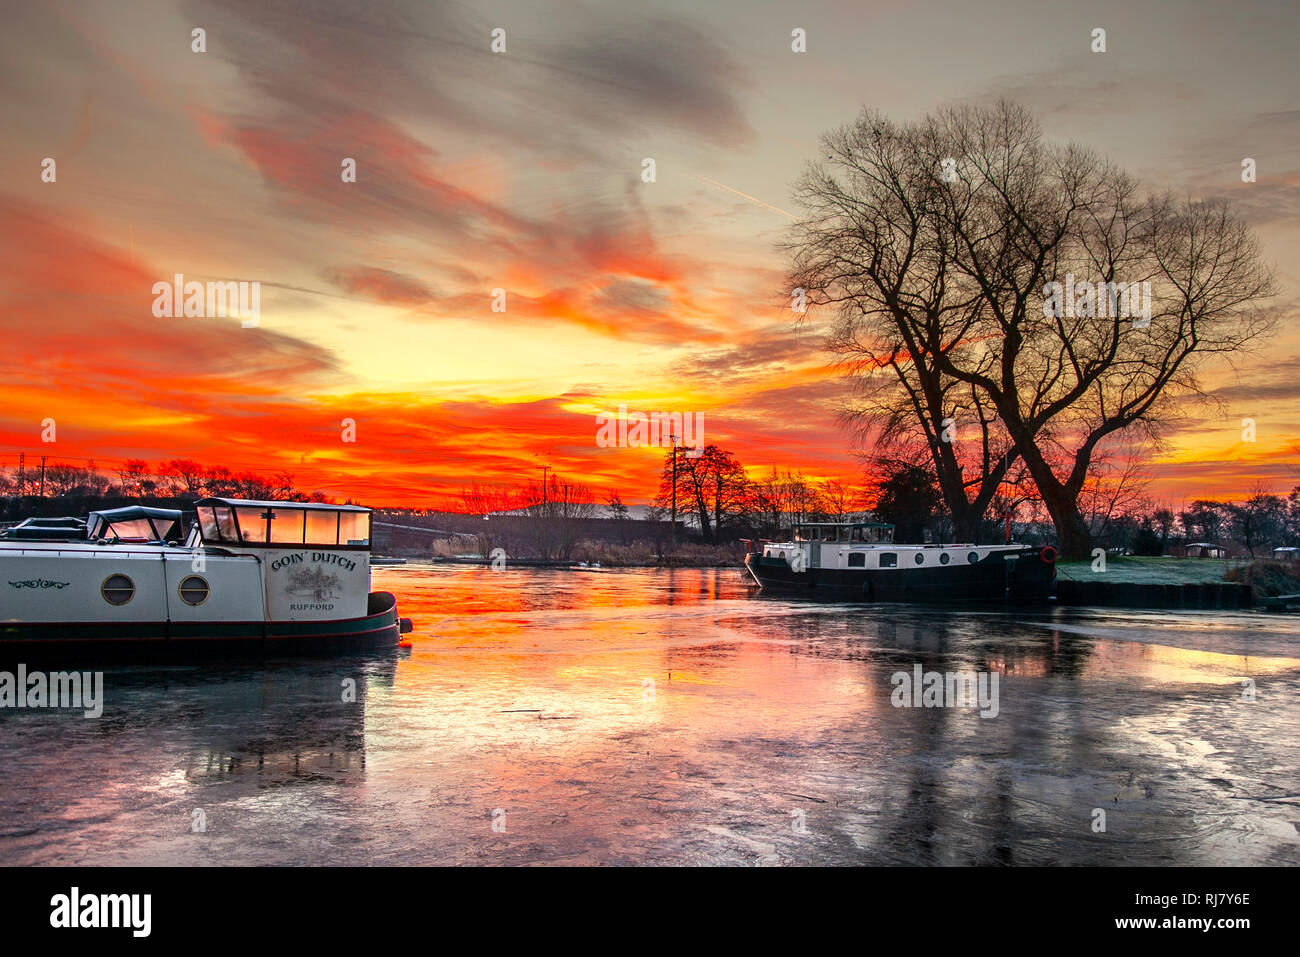 Rufford, West Lancashire, UK. 5th February 2019. Marina Sunrise. A cool & crisp start to the day as a beautiful morning sunrise cascades over the canal boats moored on the picturesque Rufford Marina in West Lancashire. Credit: Cernan Elias/Alamy Live News - Stock Image